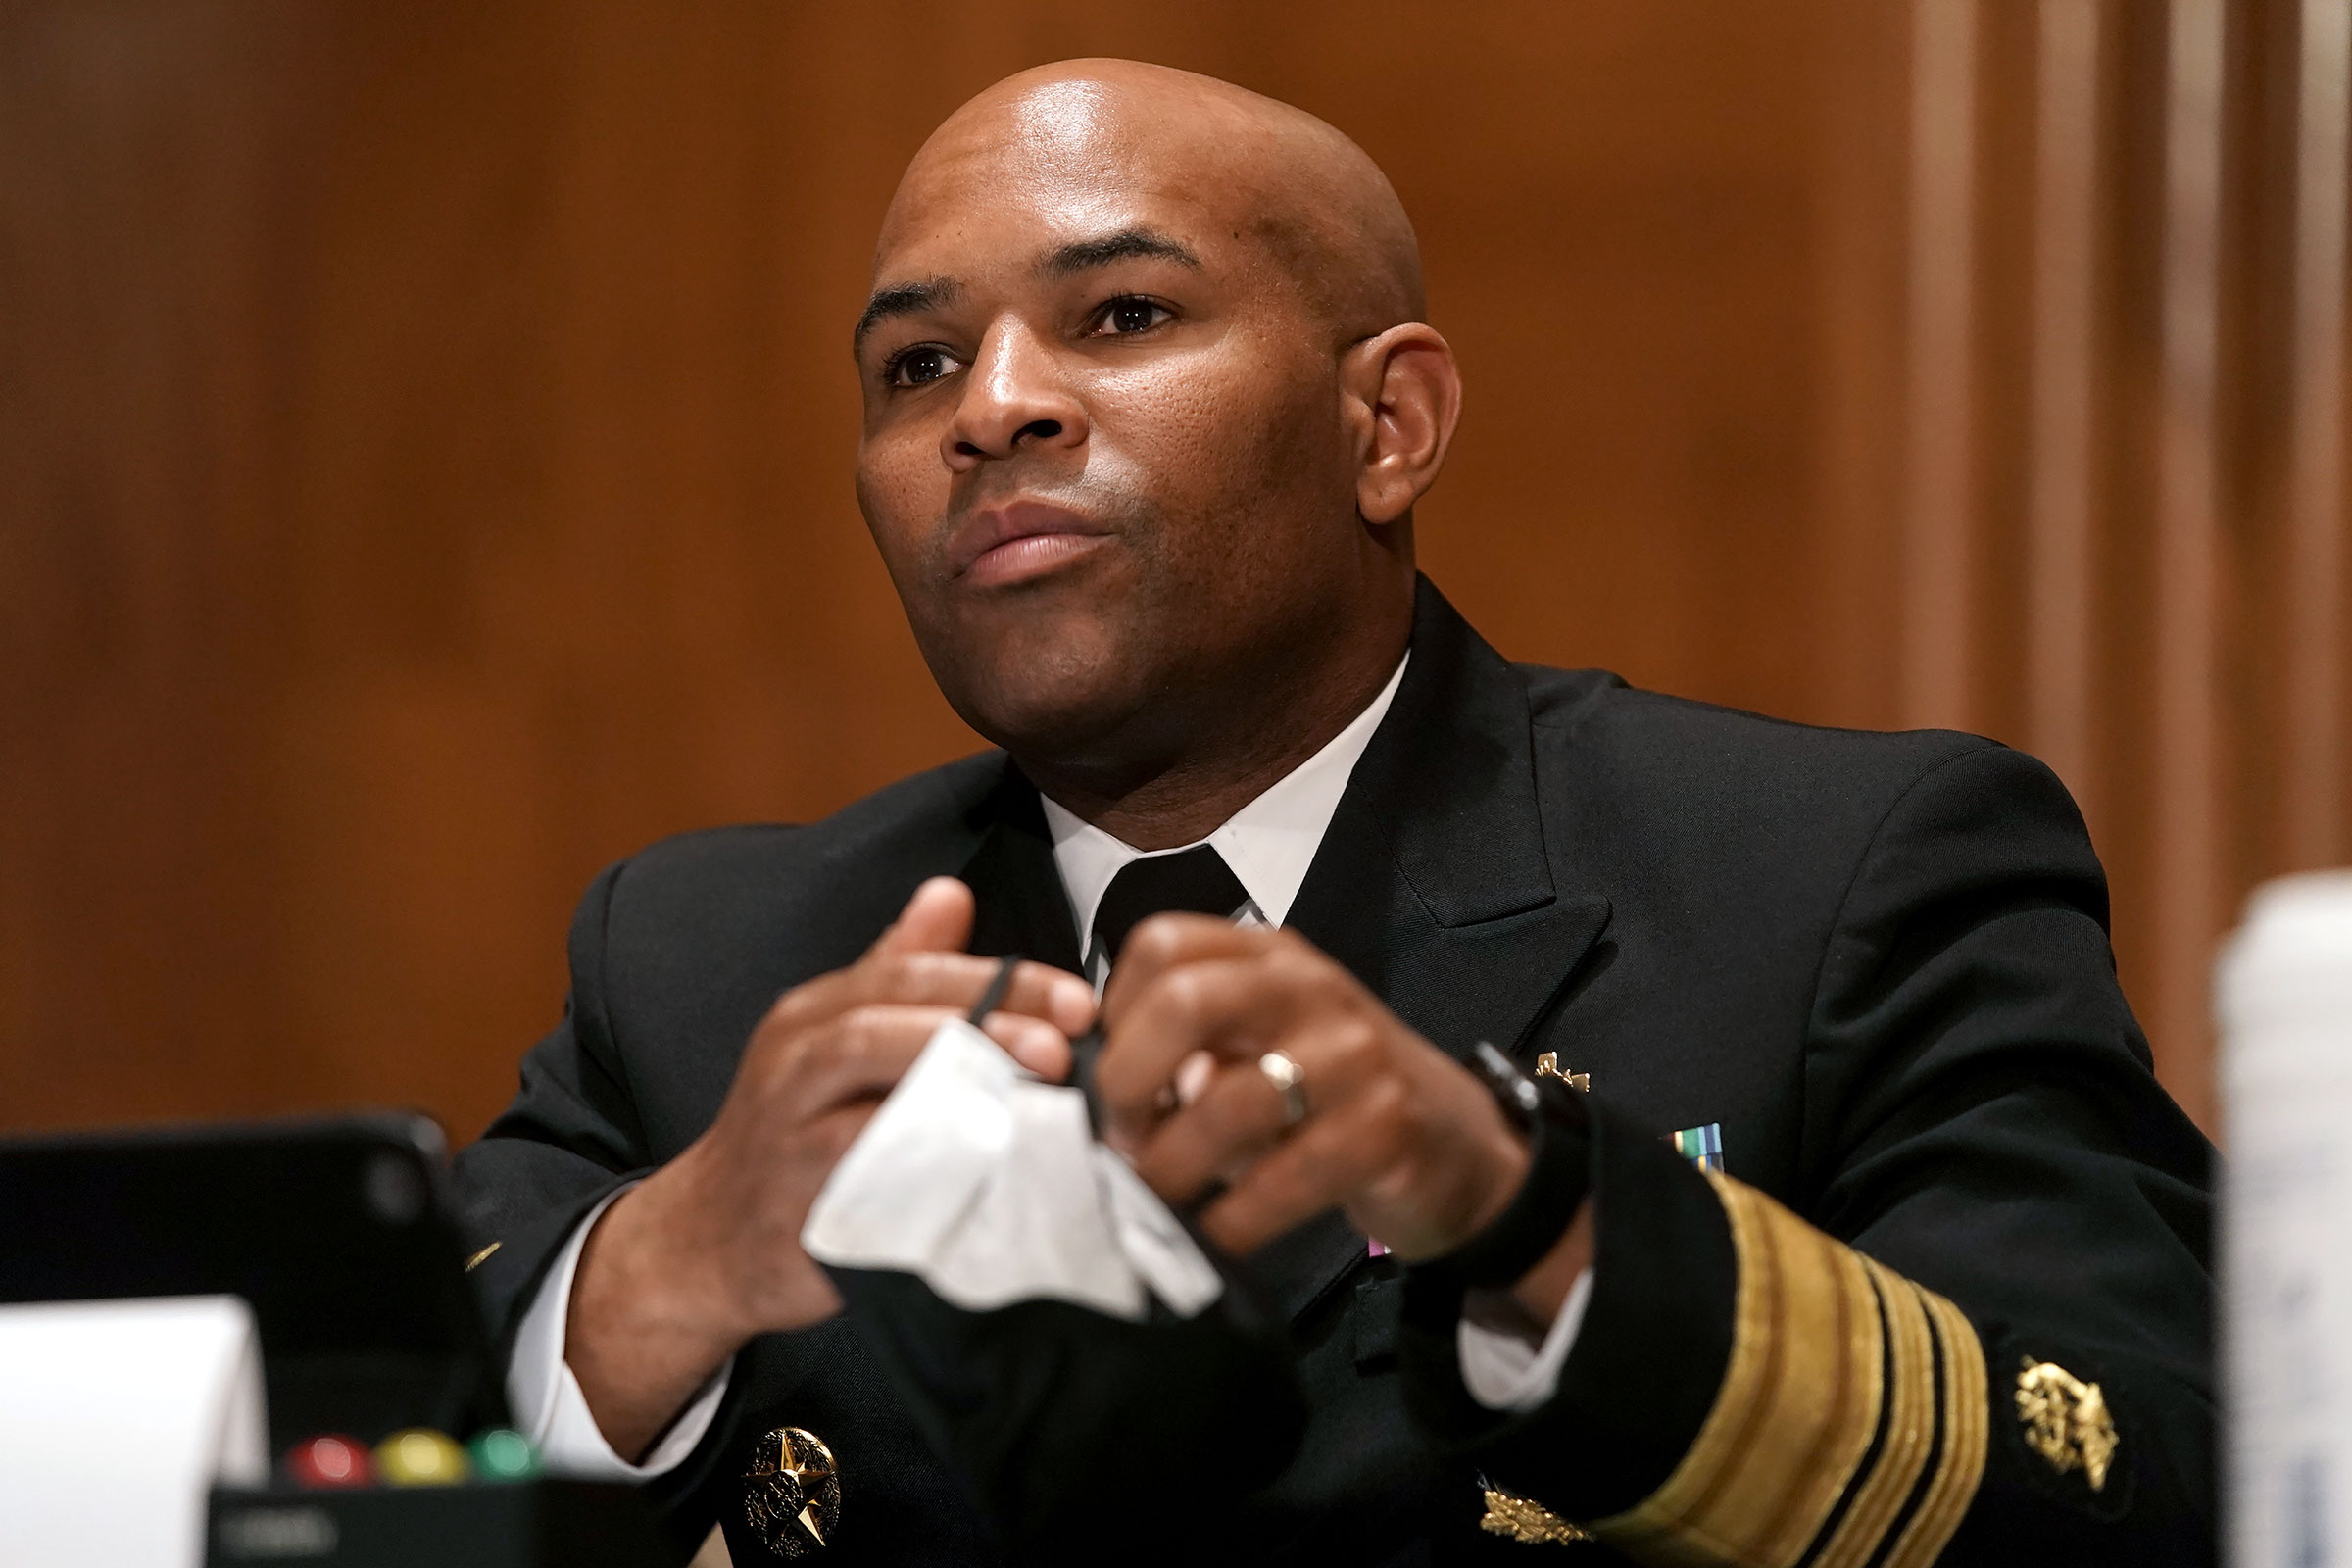 Surgeon General Jerome Adams attends a Senate Health, Education, Labor and Pensions Committee hearing on September 9 in Washington, DC.